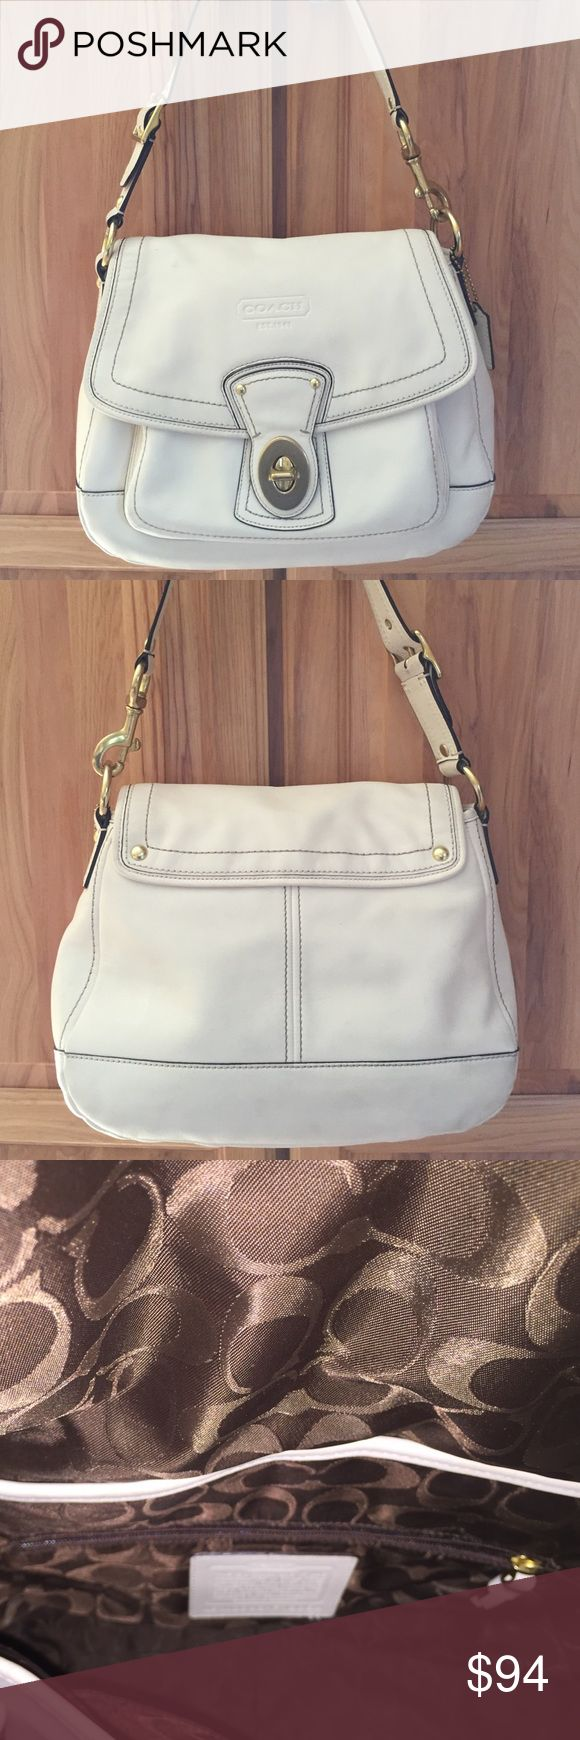 Winter White Coach Purse Buckle flap closure; pocket under flap; zipper pocket and 2 slip in pockets on inside; Coach signature lining. Has been cleaned and moisturized. Ink marks on flap, see last picture. Comes with dust bag. Coach Bags Shoulder Bags